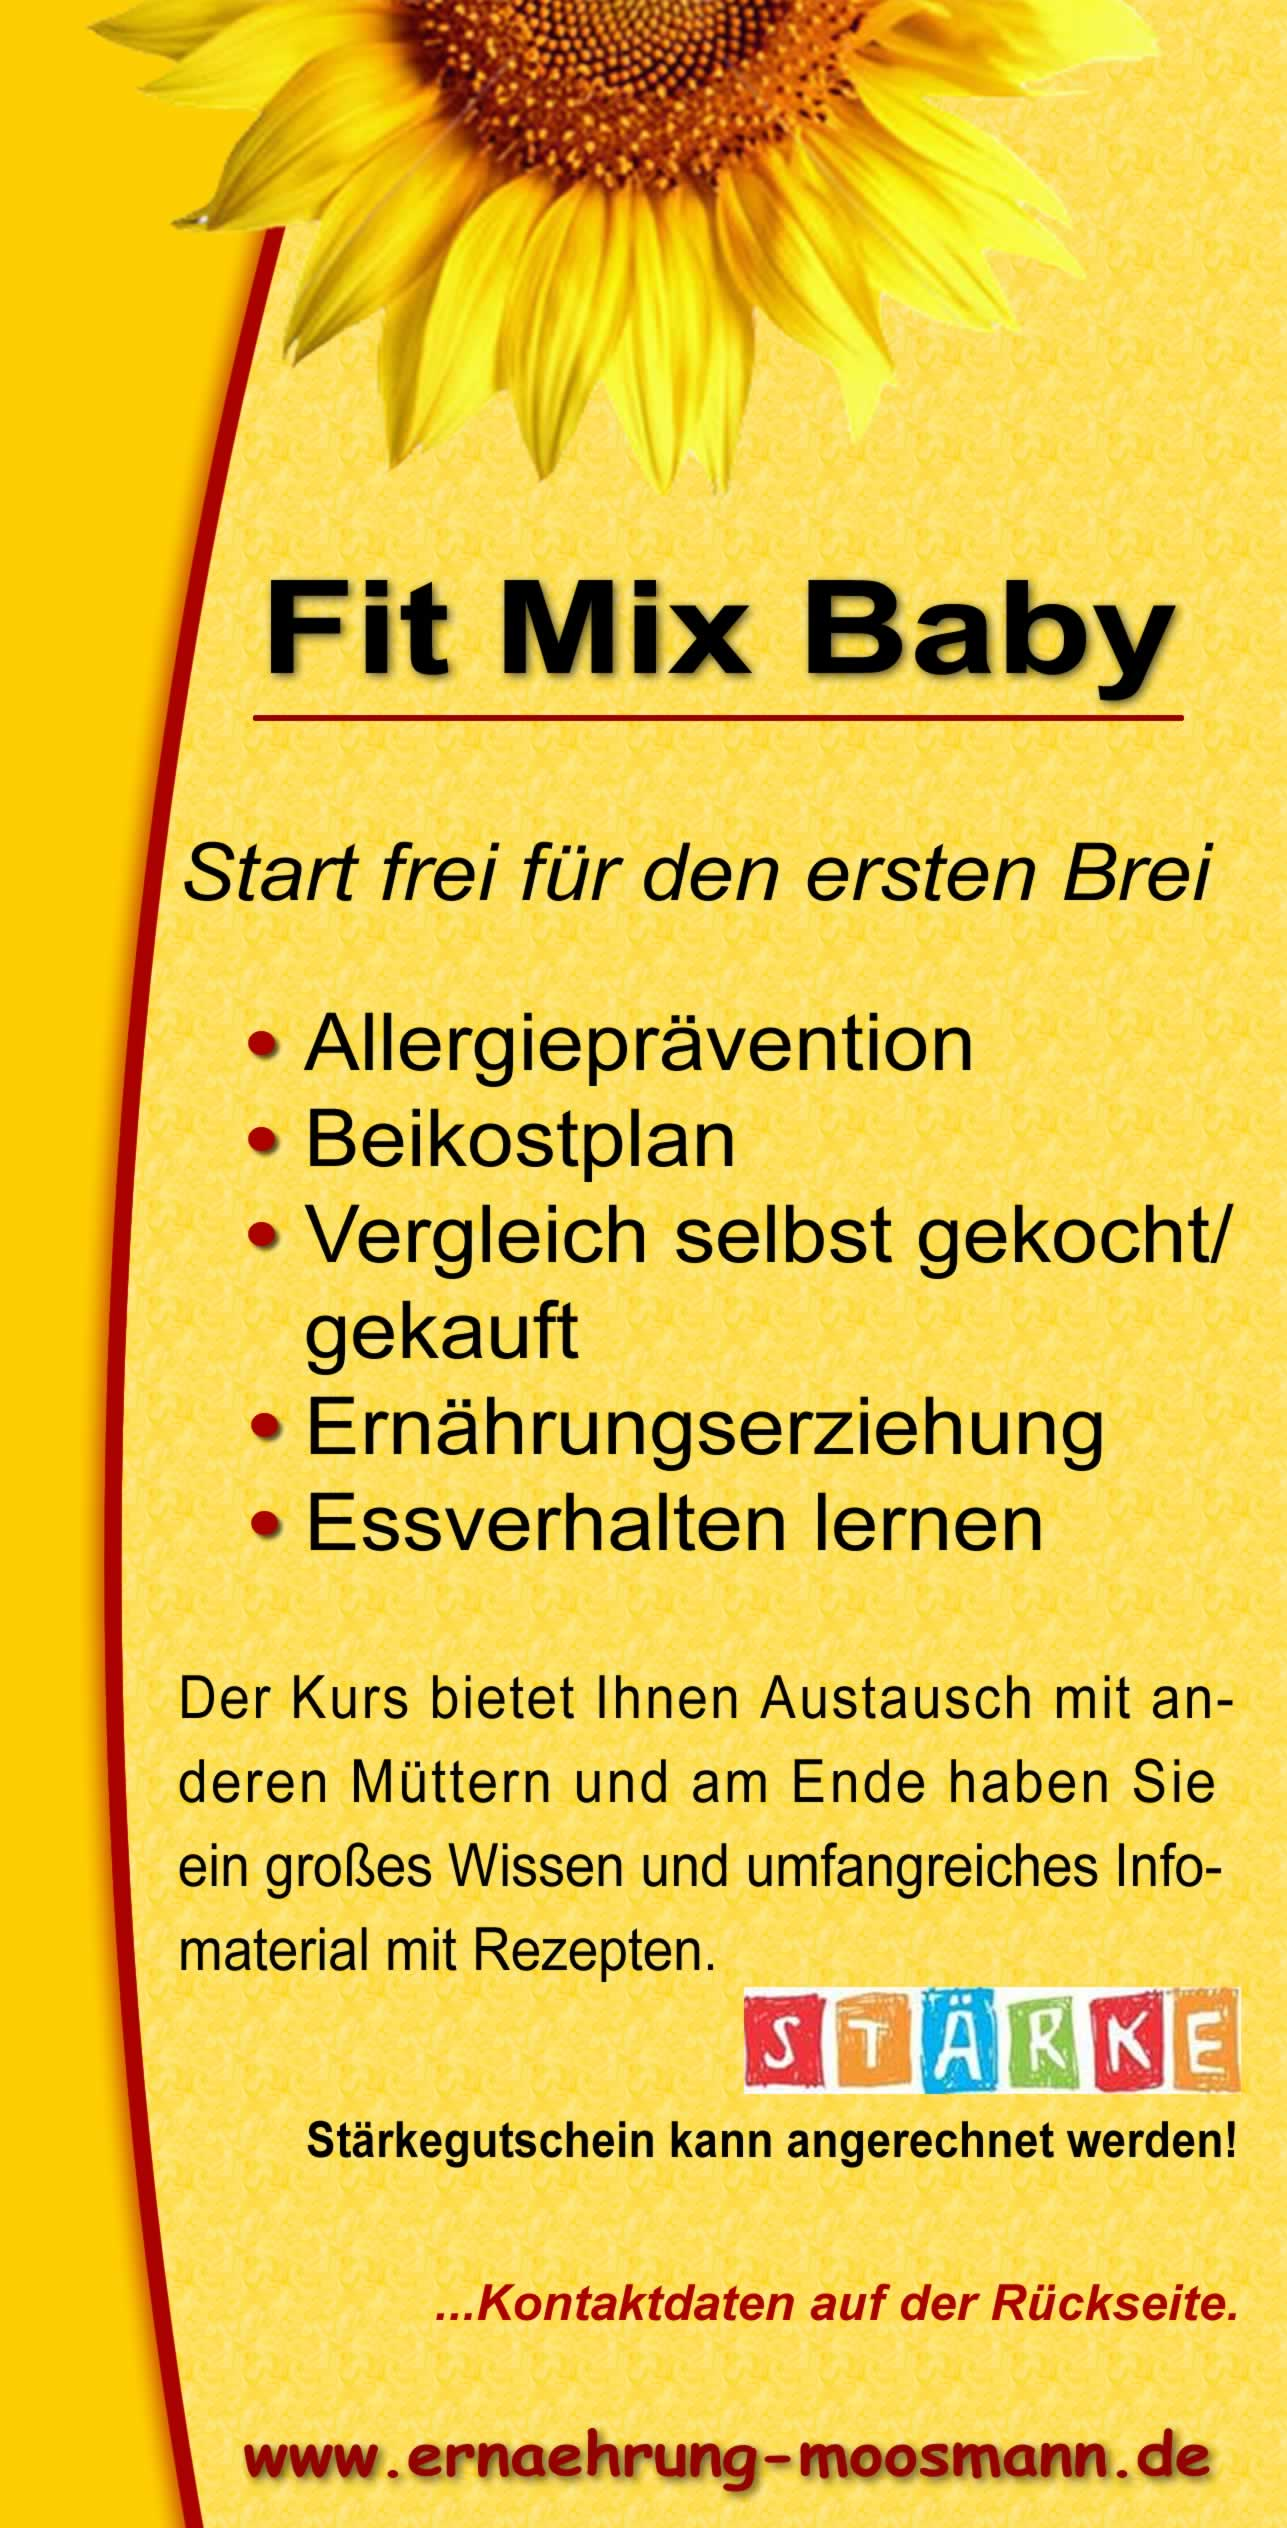 Flyer: Fit Mix Baby